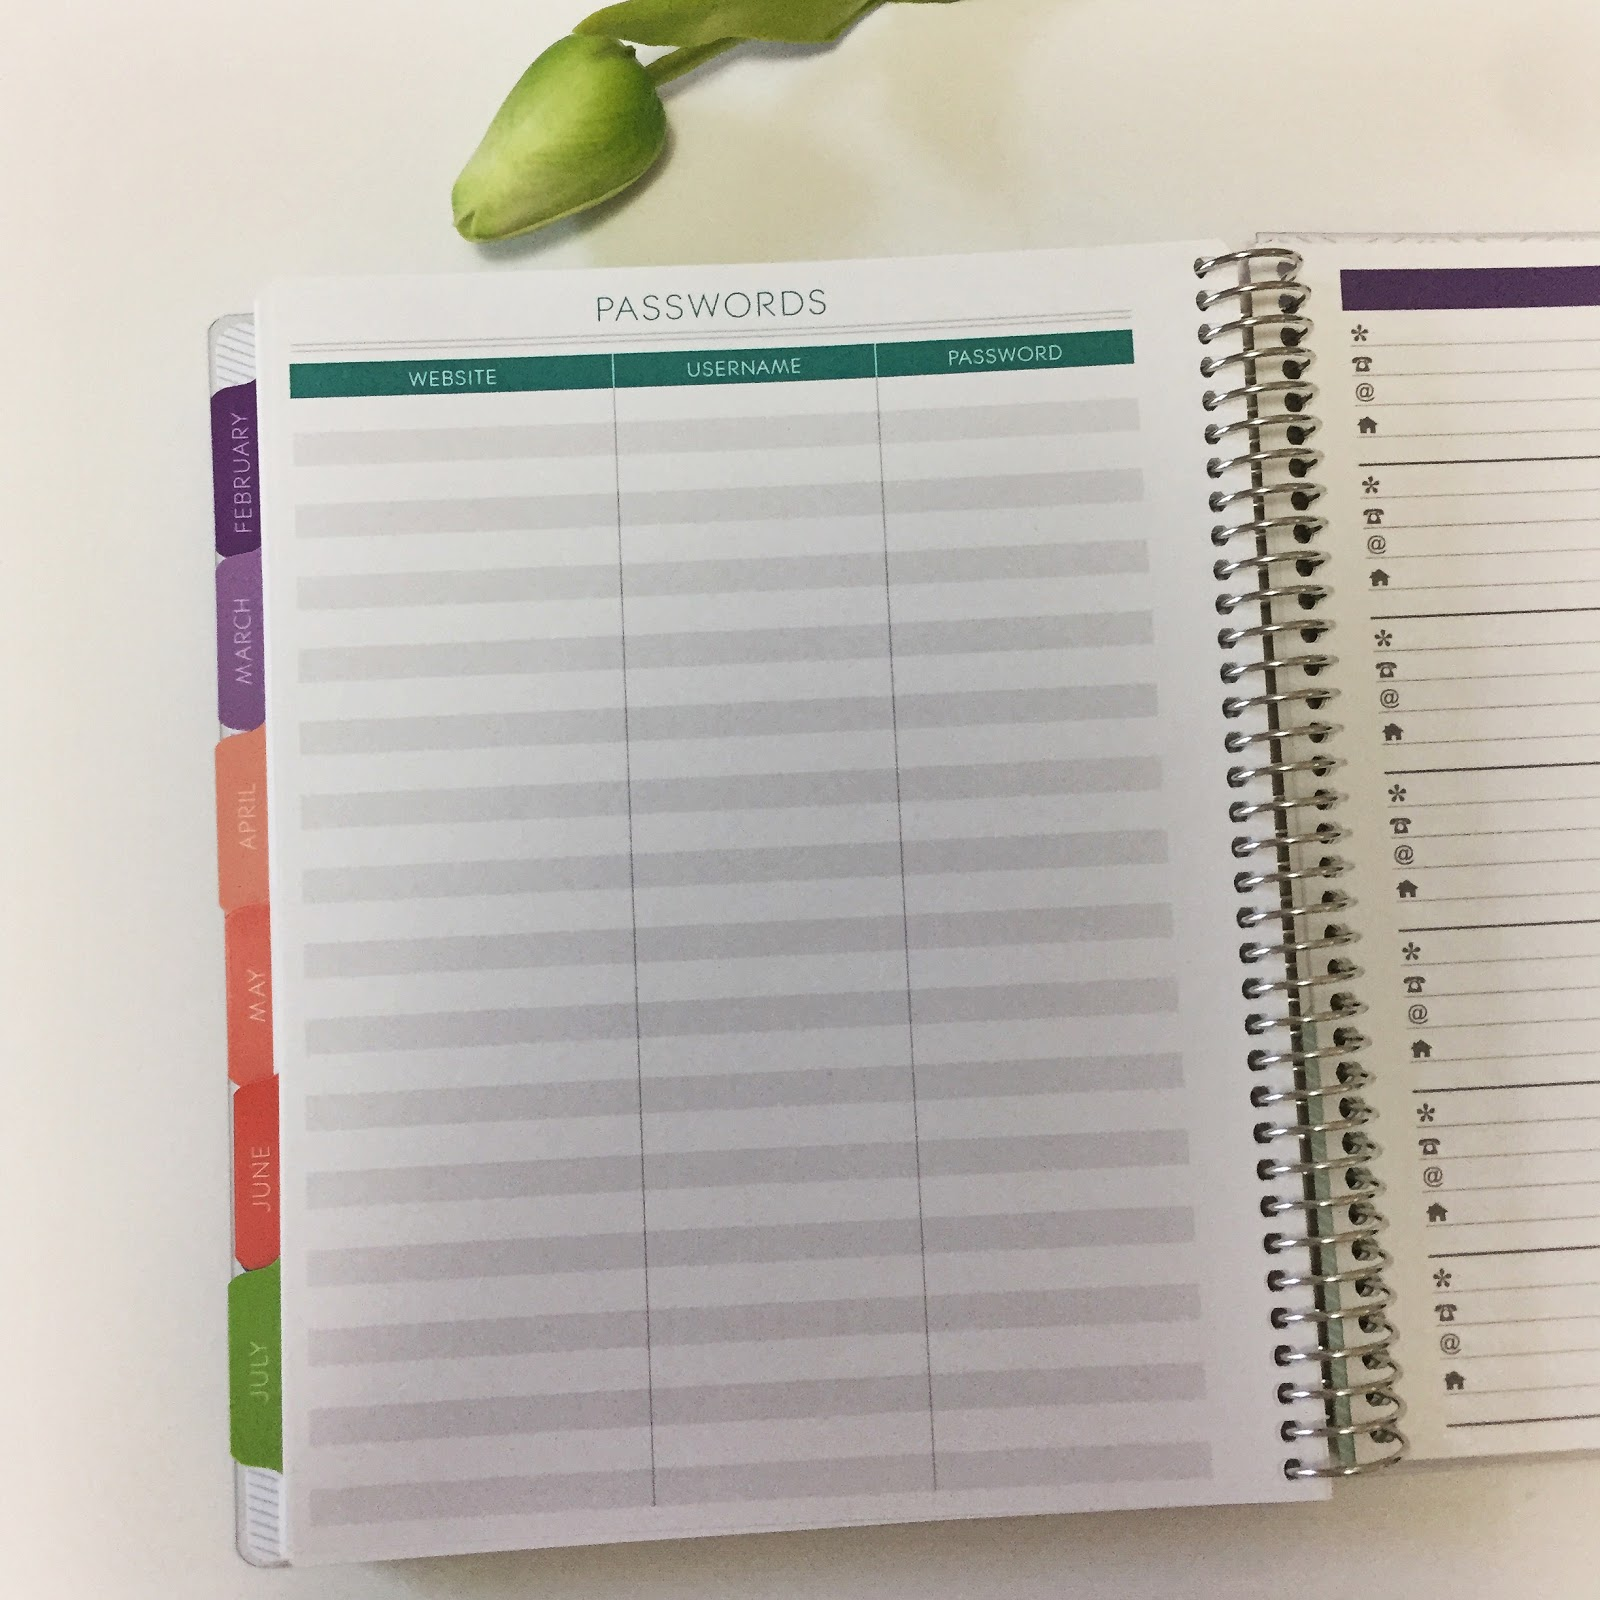 plum paper offers tons of amazing add ons to your planner to make it exactly what you wantneed in my first planner i got the monthly to do lists and the